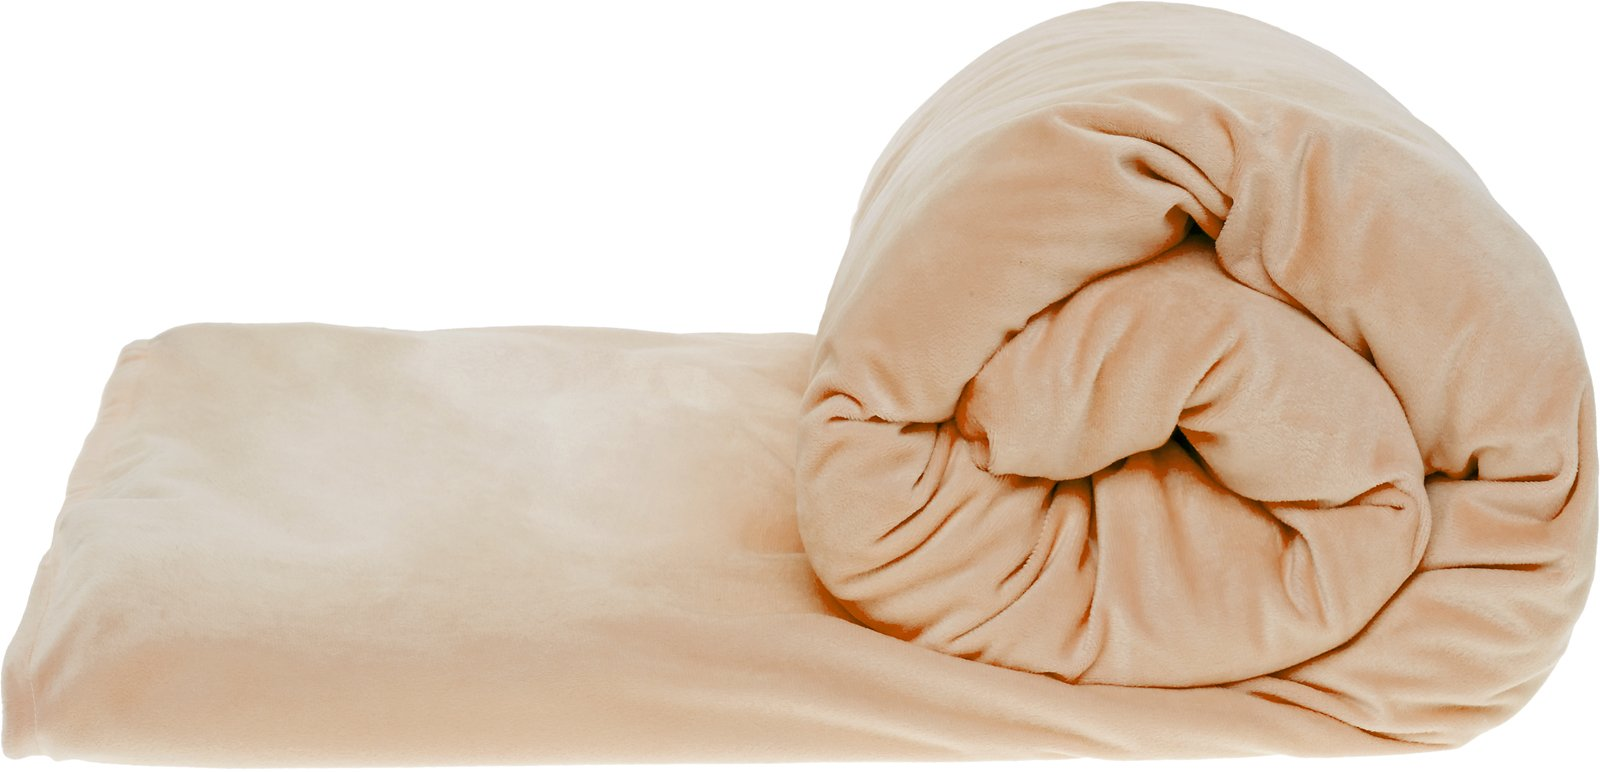 Mindful Design Adult Weighted Blanket with Removable Minky Duvet Cover - Gravity Sensory Blanket for Anxiety and Stress Relief, Faster and Deeper Sleep (Taupe, 15 Lbs)